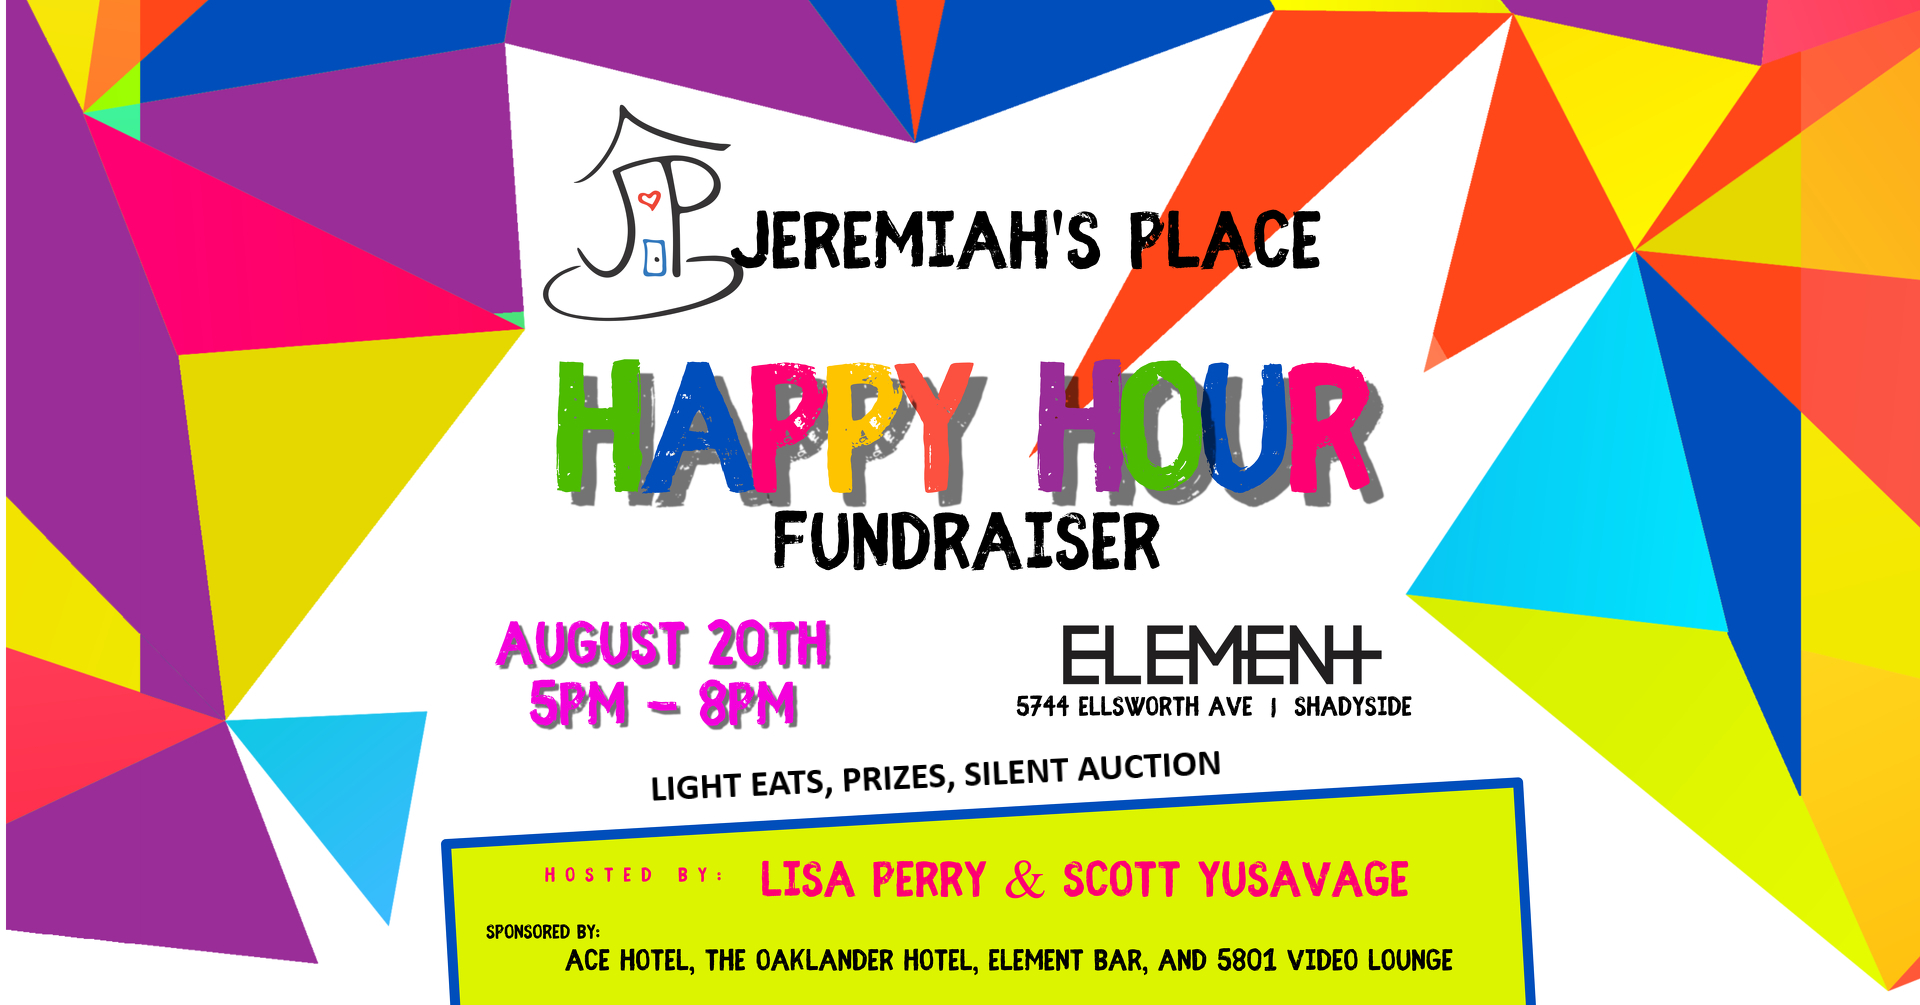 Jeremiah's Place Fundraiser East Liberty